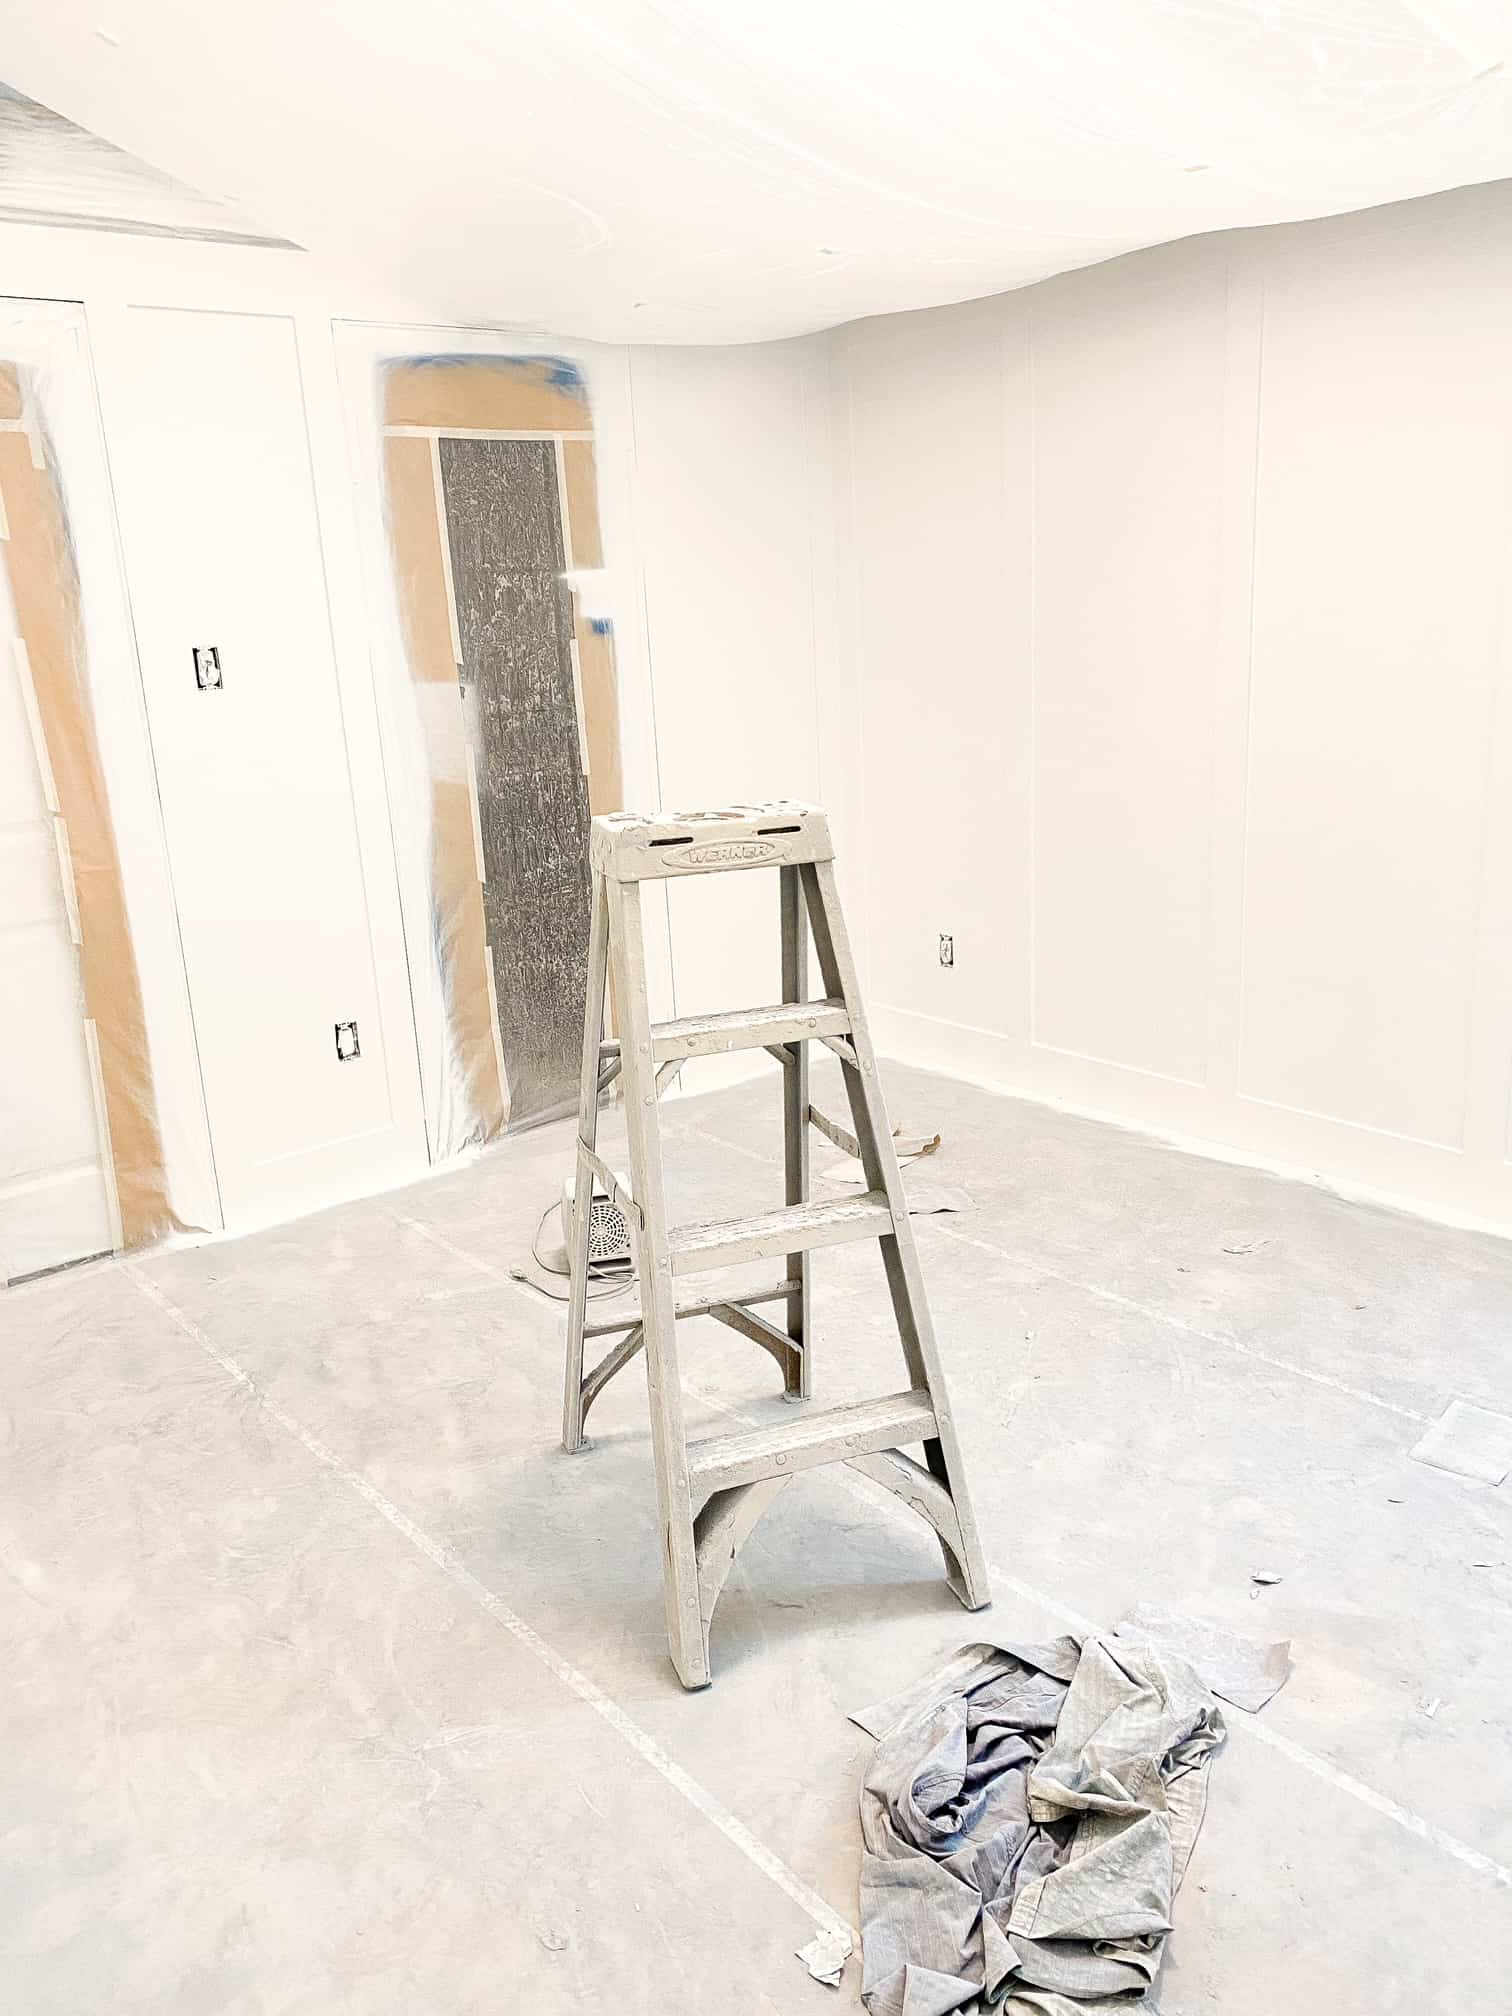 Bedroom Paint Colors by popular Dallas life and style blog, Glamorous Versatility: image of a unfinished bedroom with a step ladder in the middle of the floor.